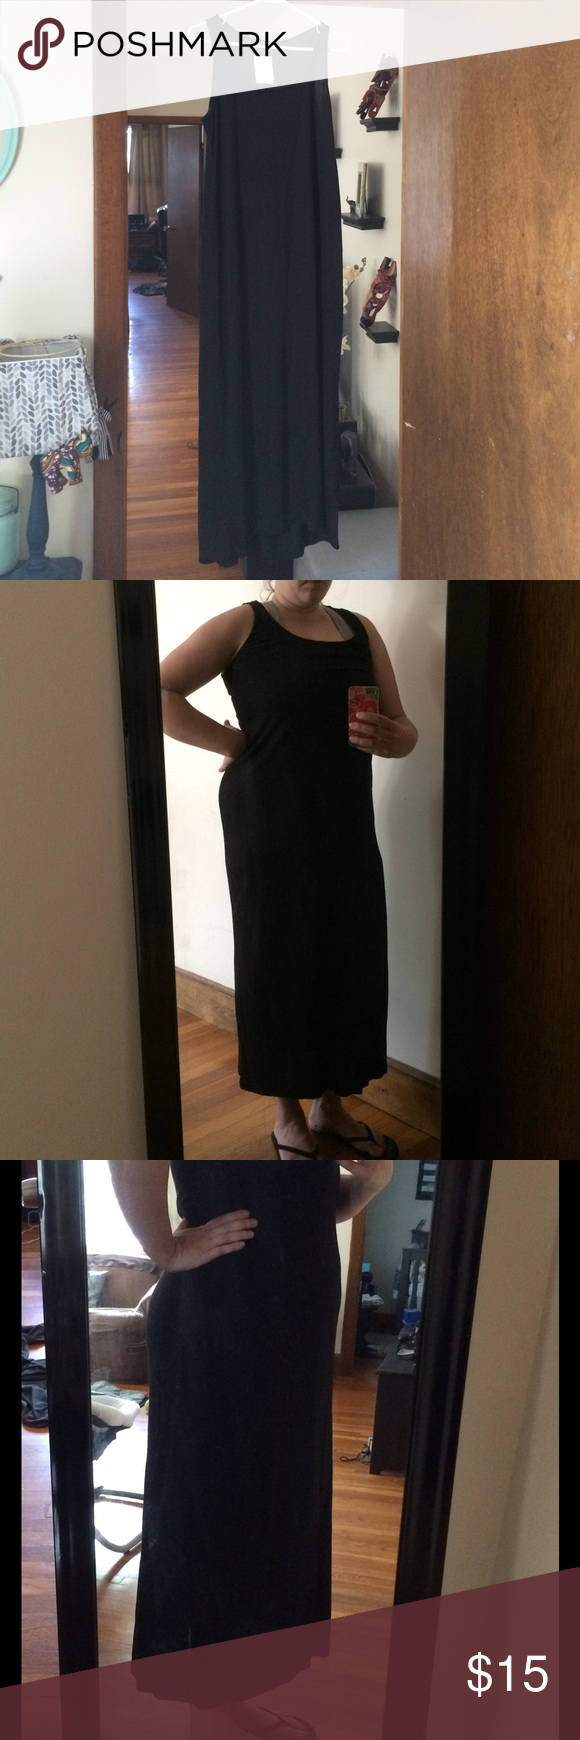 NWT h&m basics dress New never worn- perfect for dressing up or down. Modeled pix are me 4 months after a baby so it'll look better on you!  H&M Dresses Maxi